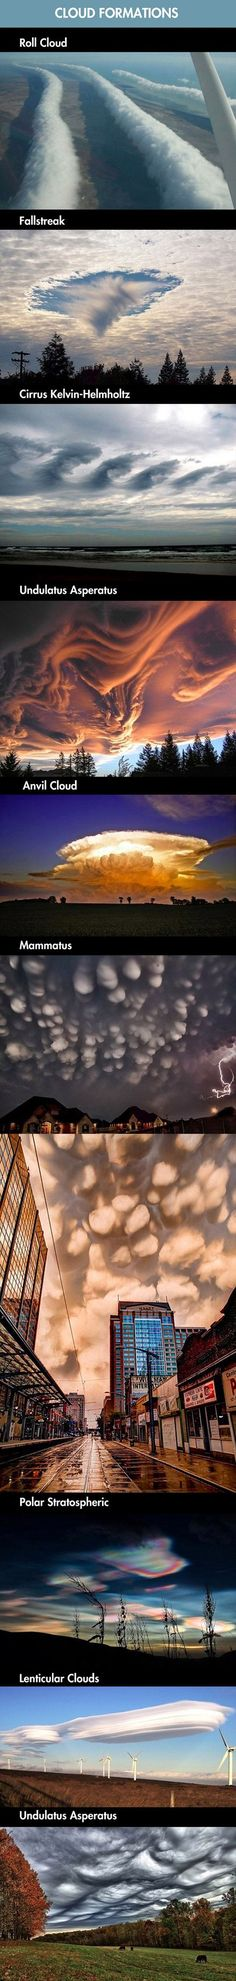 Some incredible cloud formations that exist in nature.